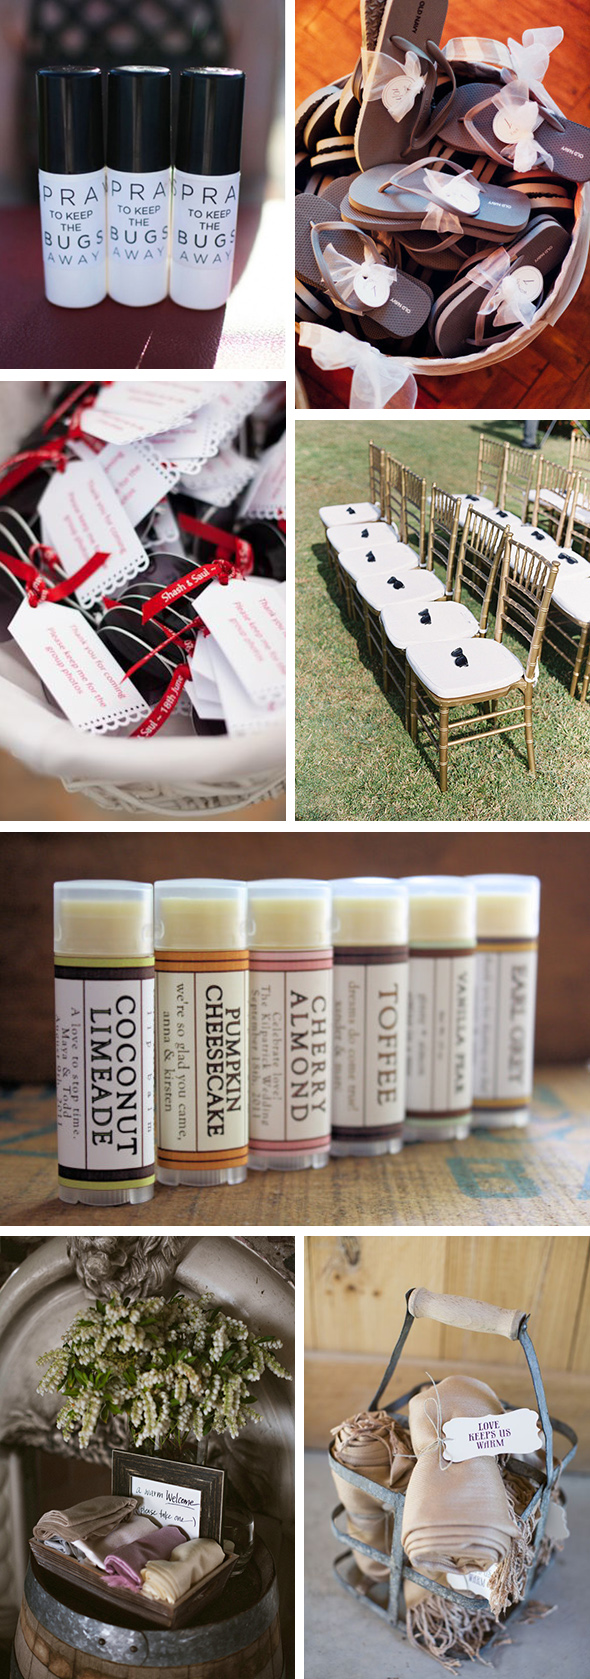 destination wedding guest amenities Destination Wedding Amenities for Guests